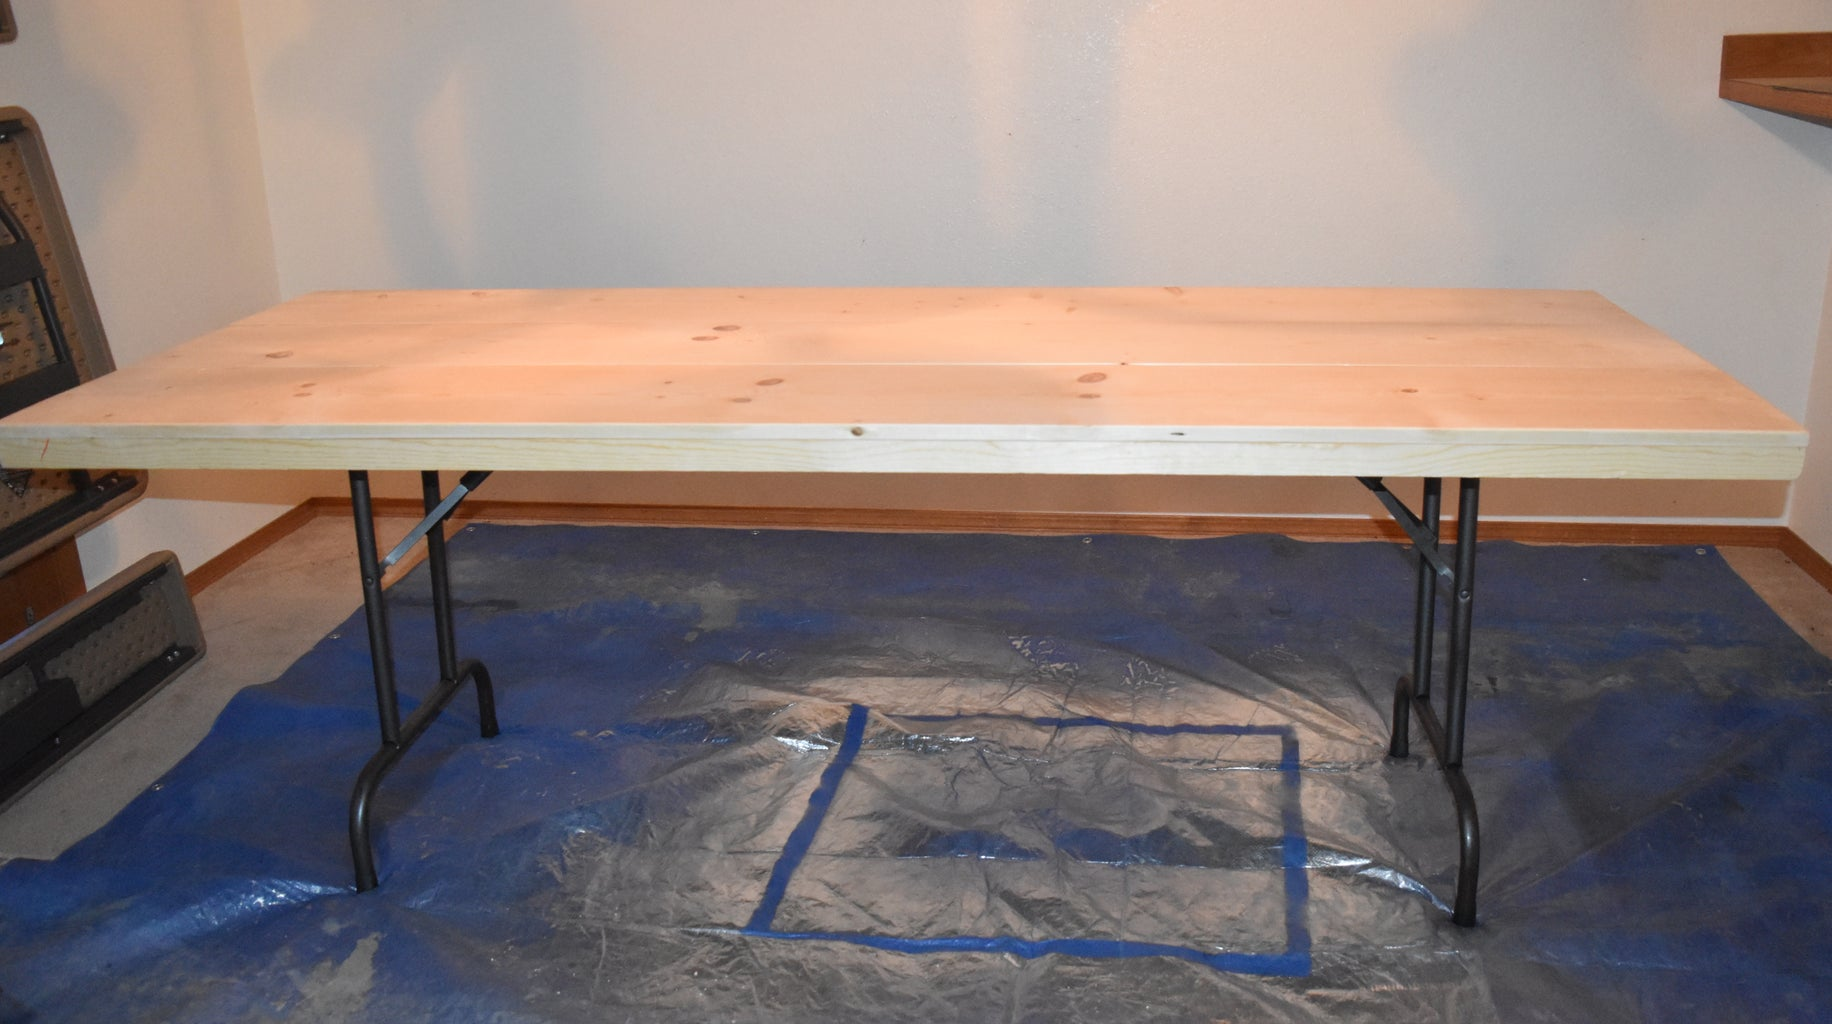 STEP 5: Attach Tabletop to Folding Table